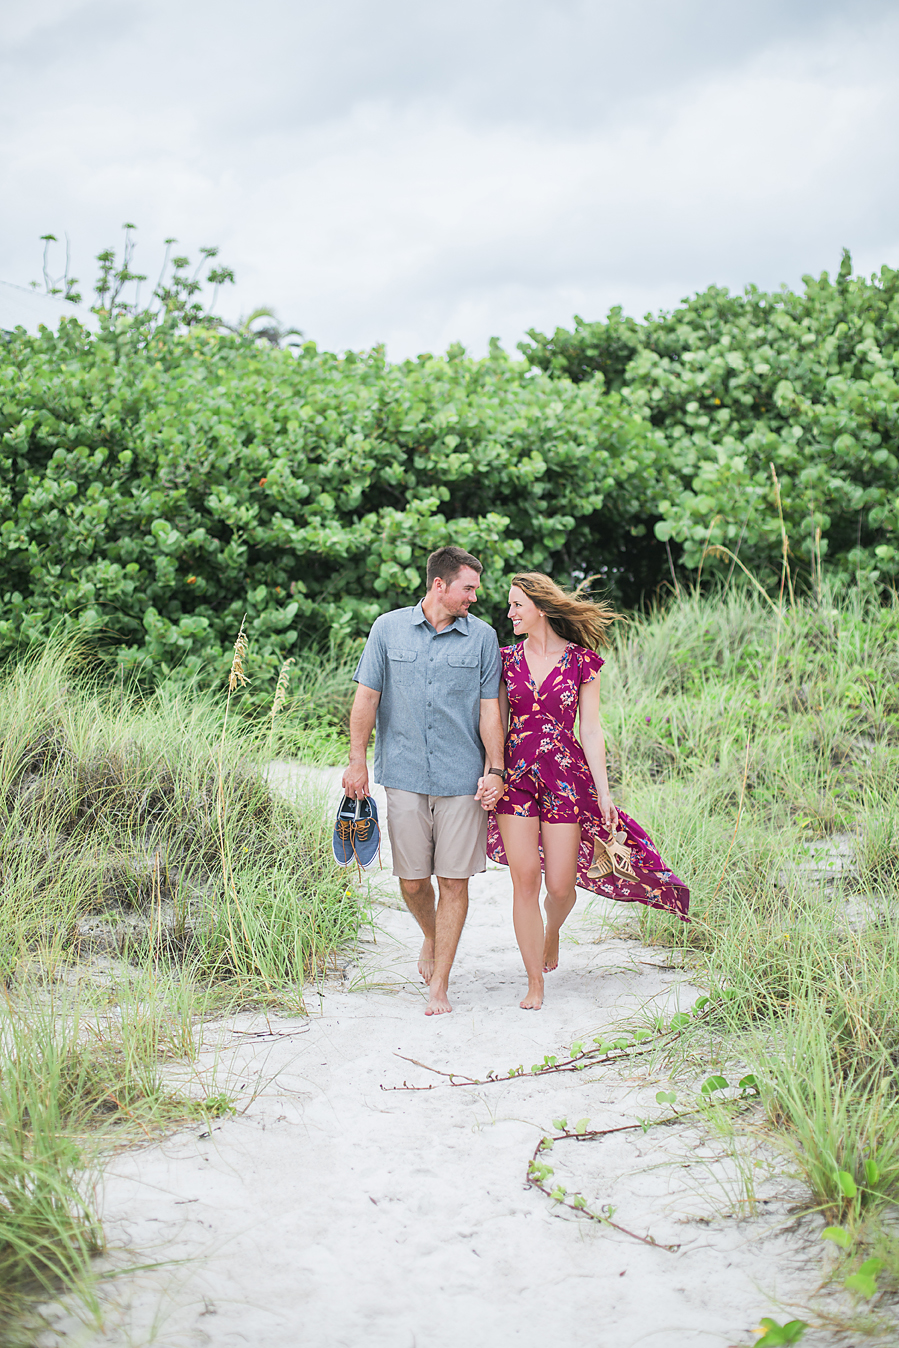 Marybeth + Brendan - Anna Maria Island Engagement Session - Emily & Co. Photography - WEB (54).jpg